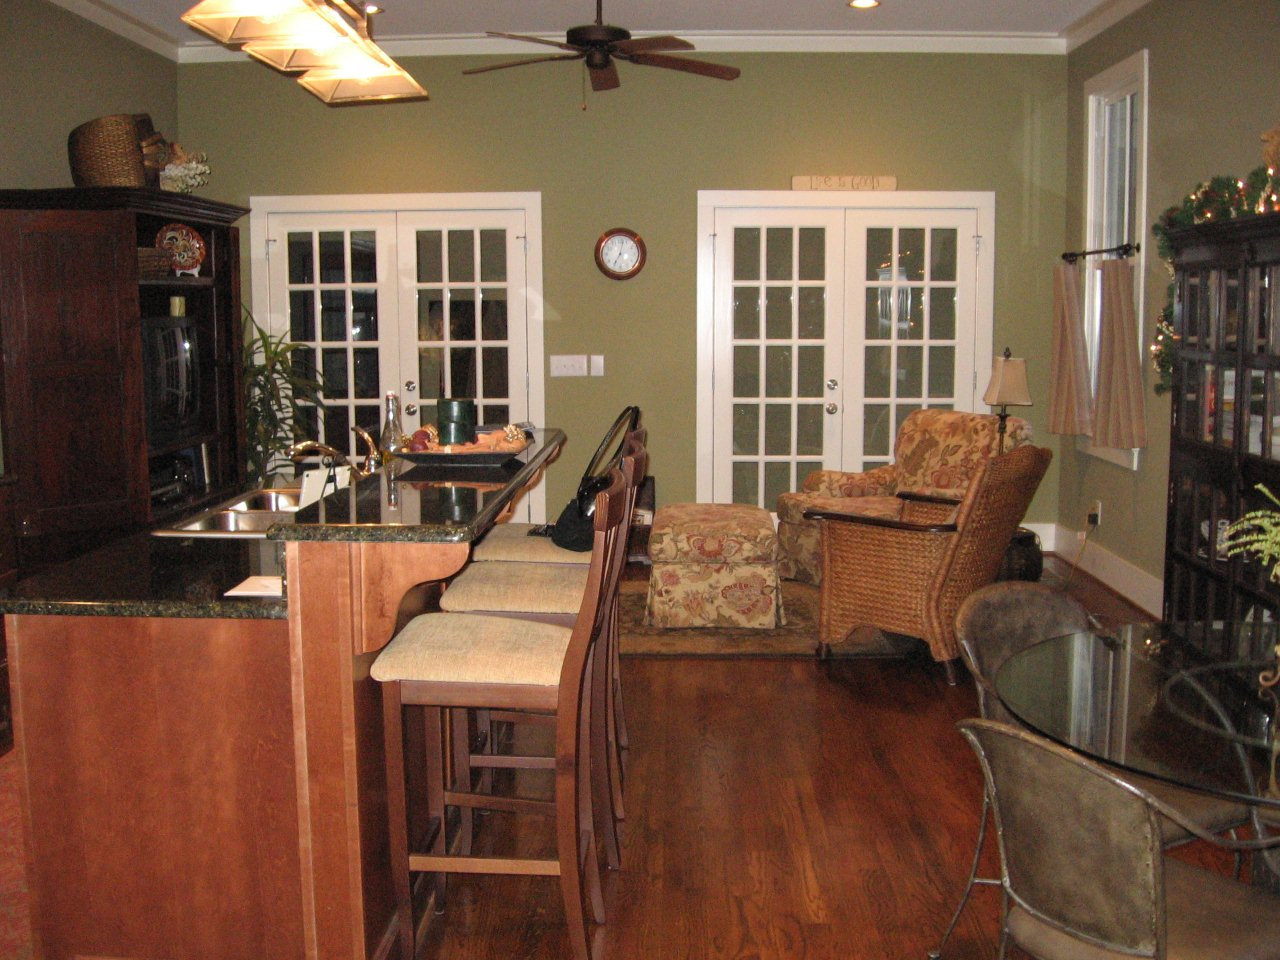 Olive Green Painted Kitchen Cabinets The cabinetry was designed and